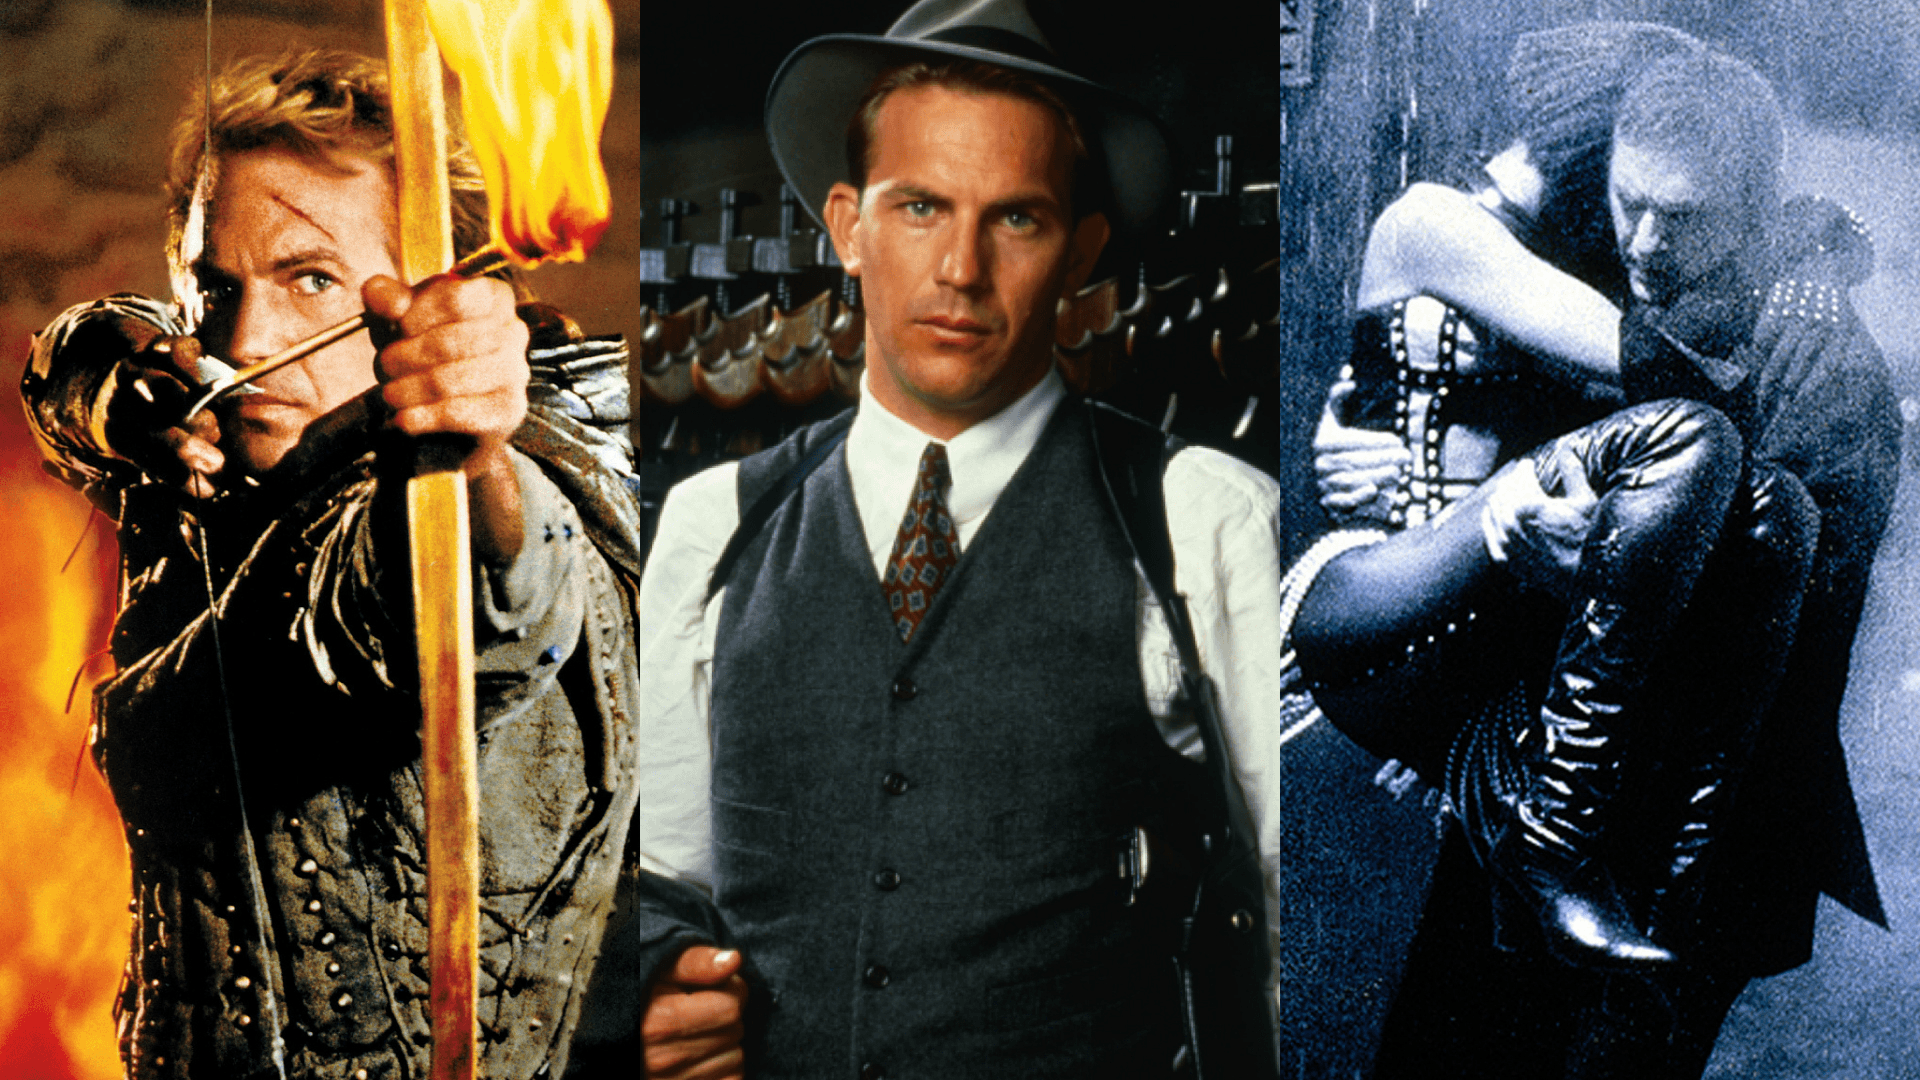 Kevin Costner Robin Hood: Prince Of Thieves The Untouchables The Bodyguard